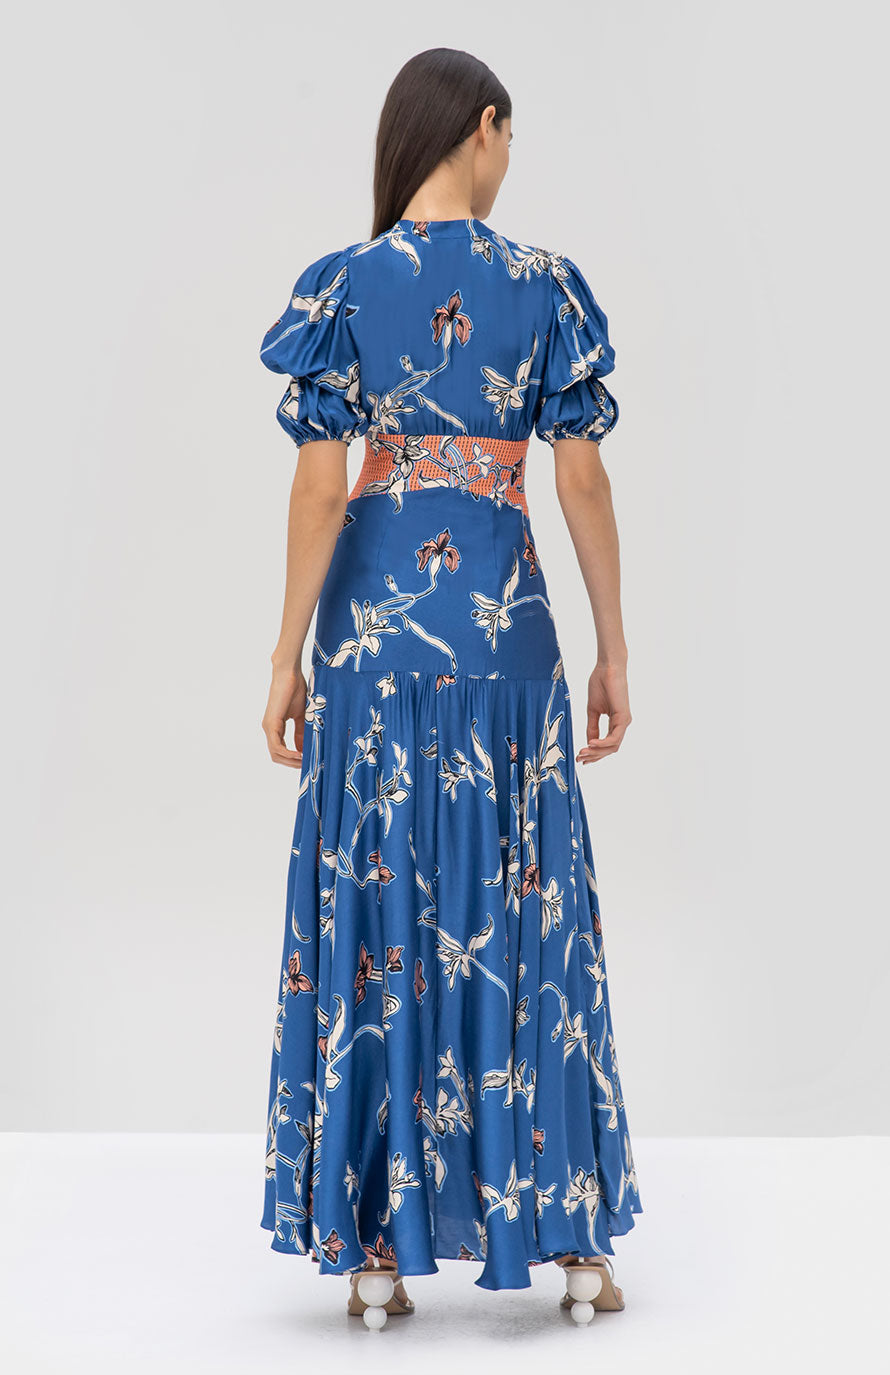 Alexis Bowden Dress in Royal Blue Orchid from the Pre Fall 2019 Ready To Wear Collection - Rear View